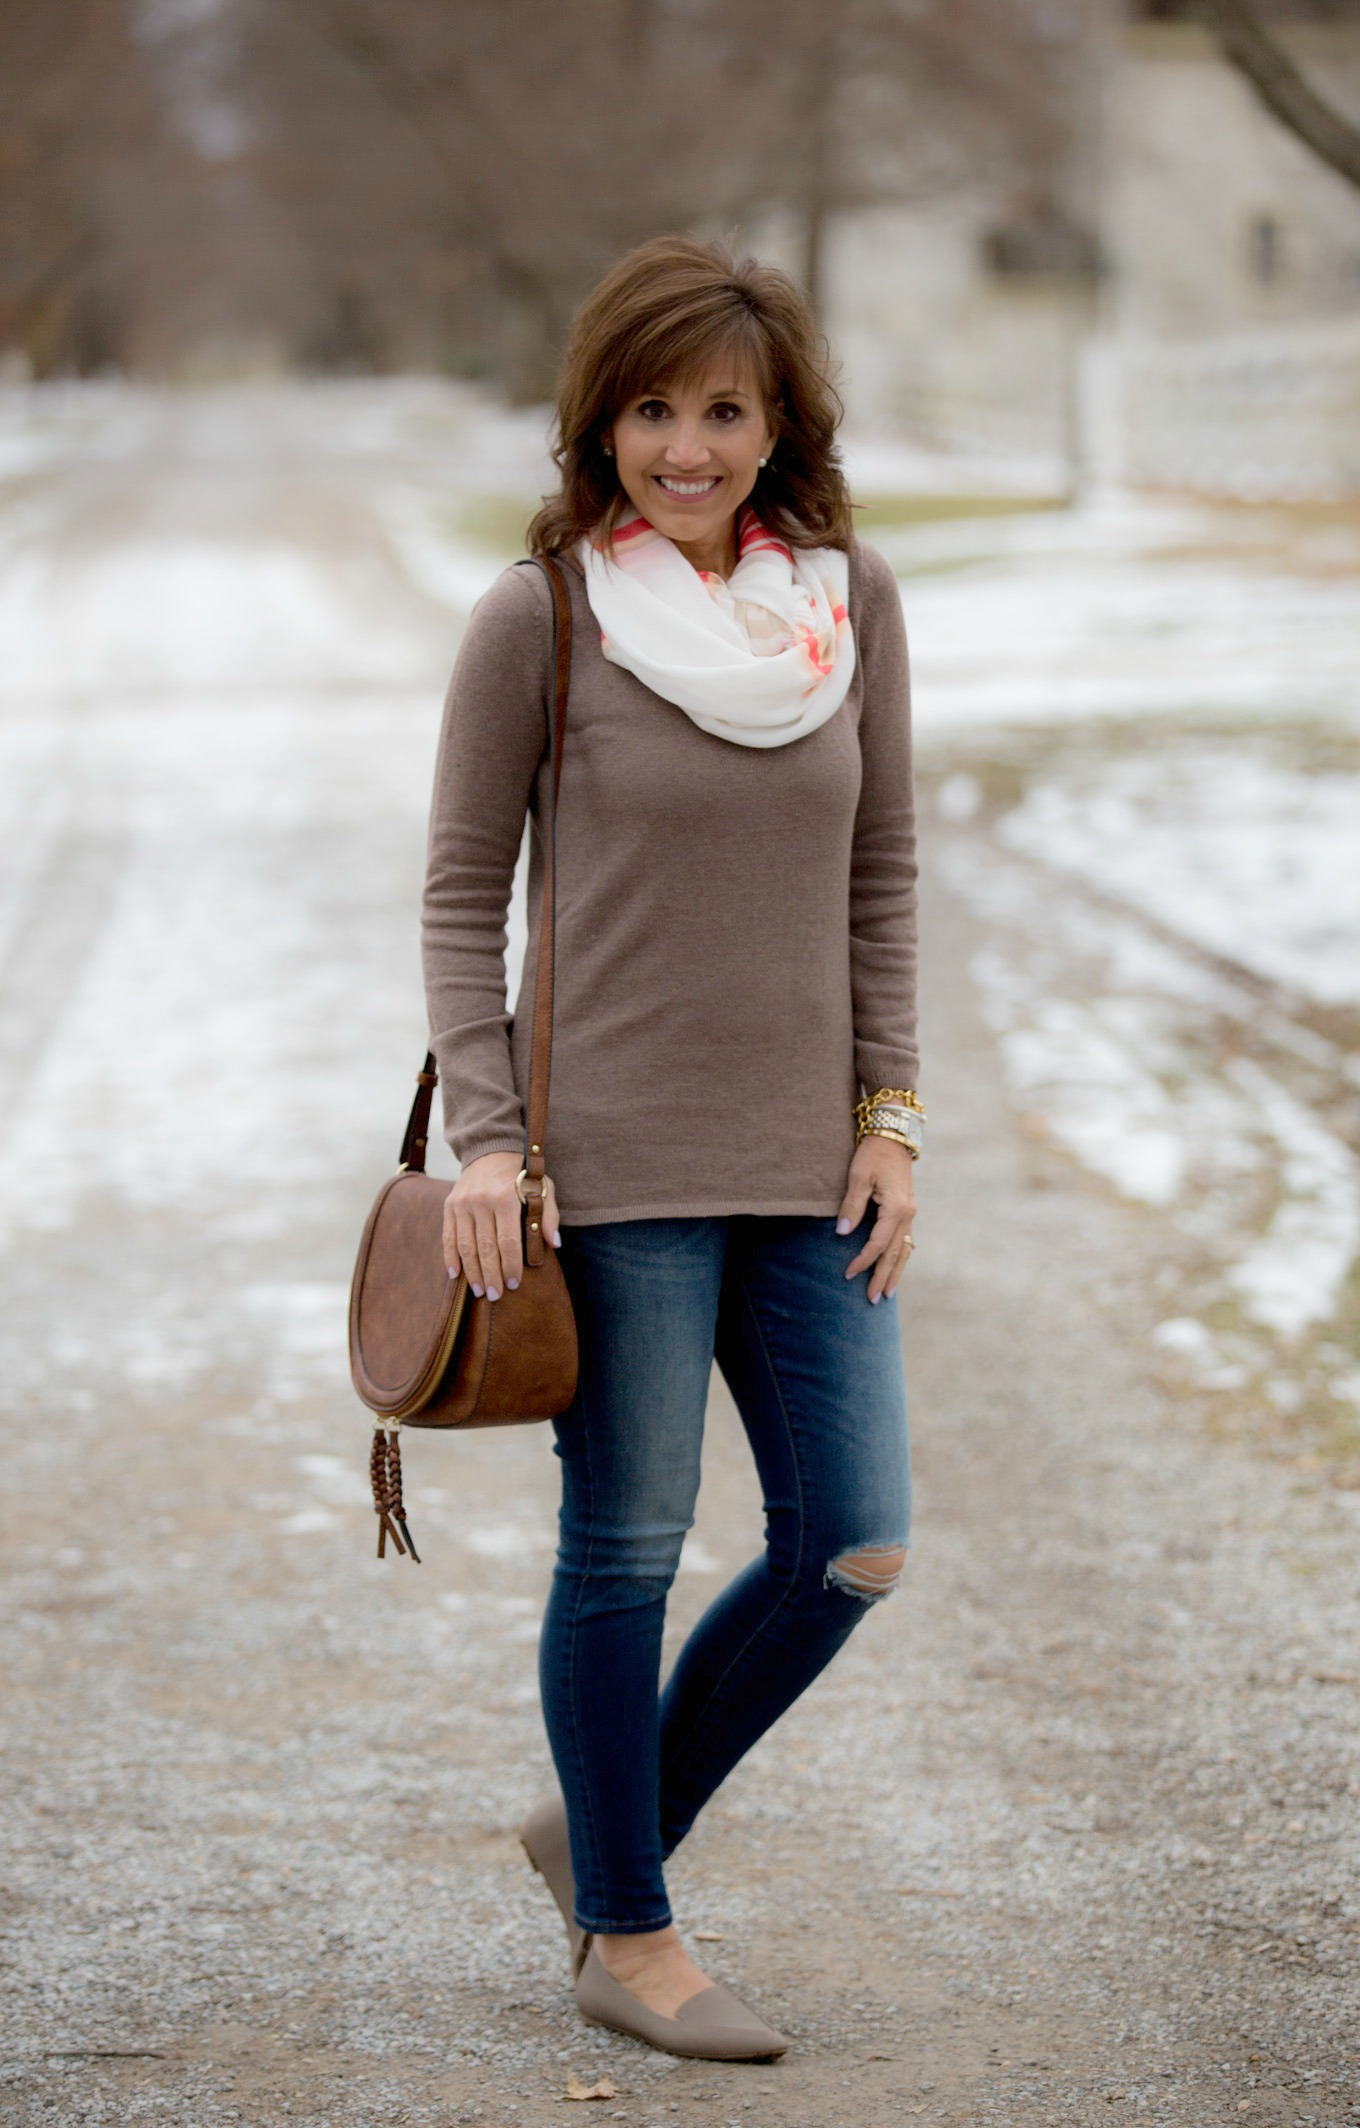 Over 40 fashion blogger, Cyndi Spivey, styling a casual winter outfit.